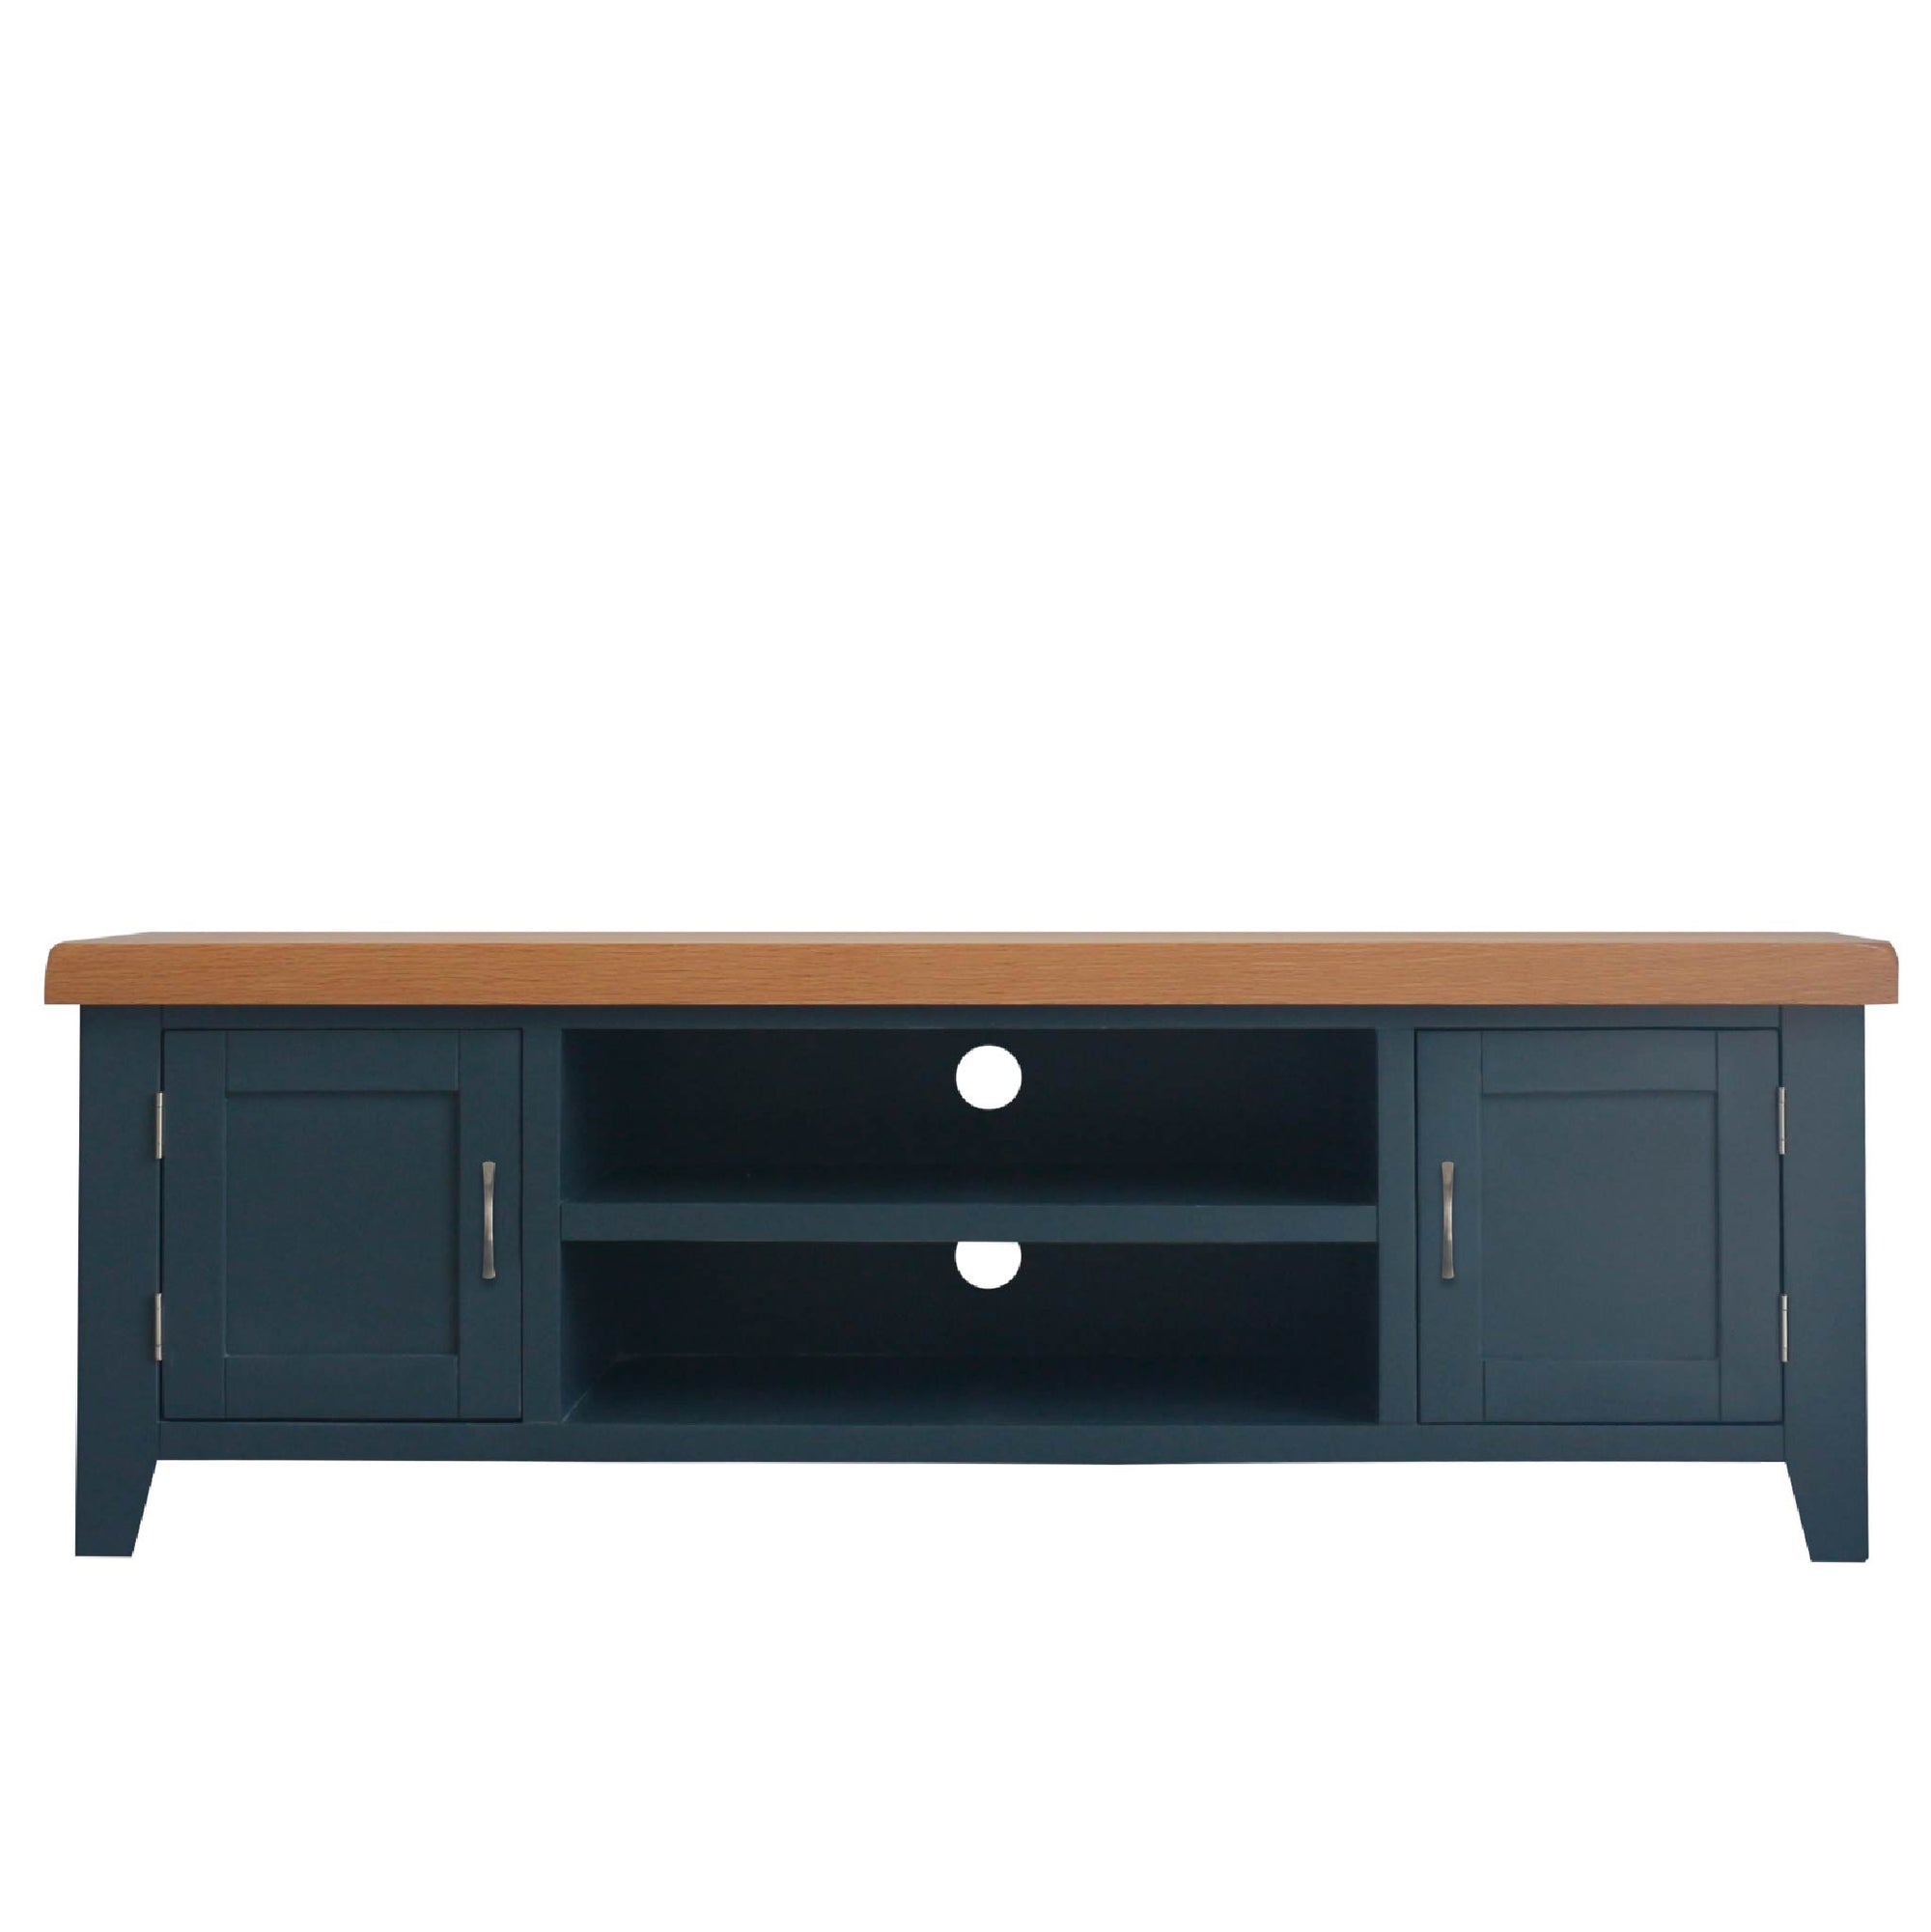 Chatsworth Blue Large 150 cm TV Stand from Roseland Furniture